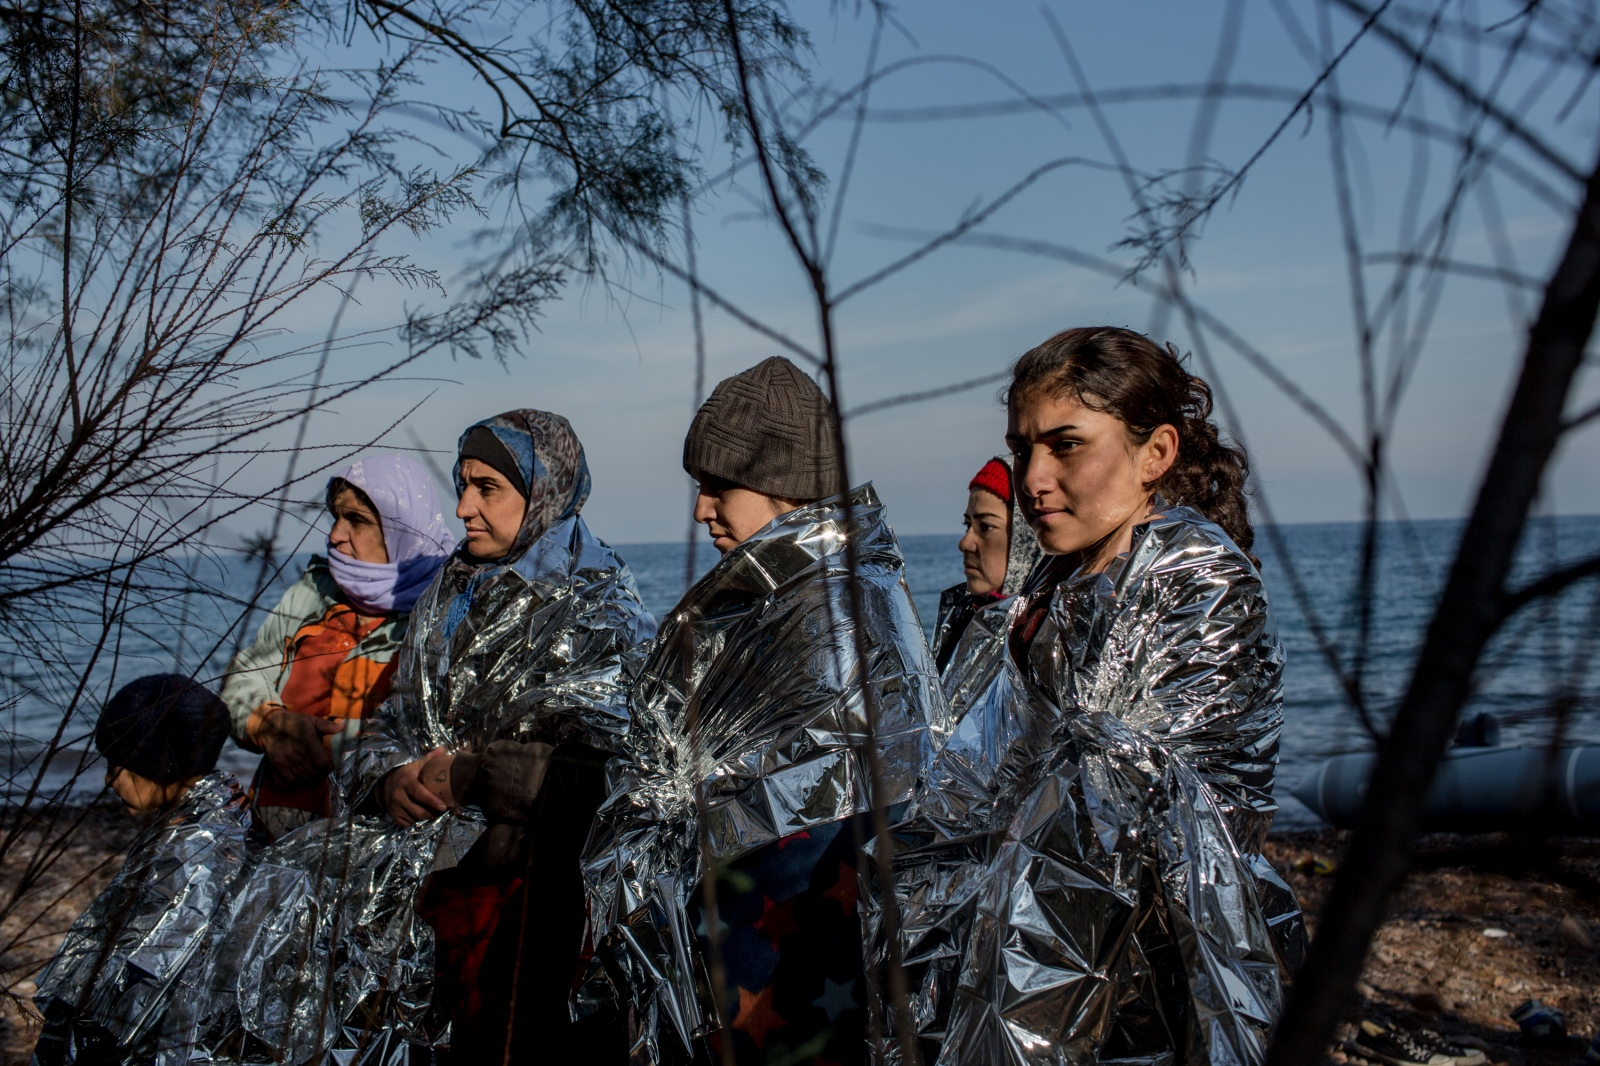 Kurdish refugees warm themselves on the beach shortly after arriving on the shores of Lesbos, Greece, after crossing the Aegean Sea from Turkey on December 8, 2015.